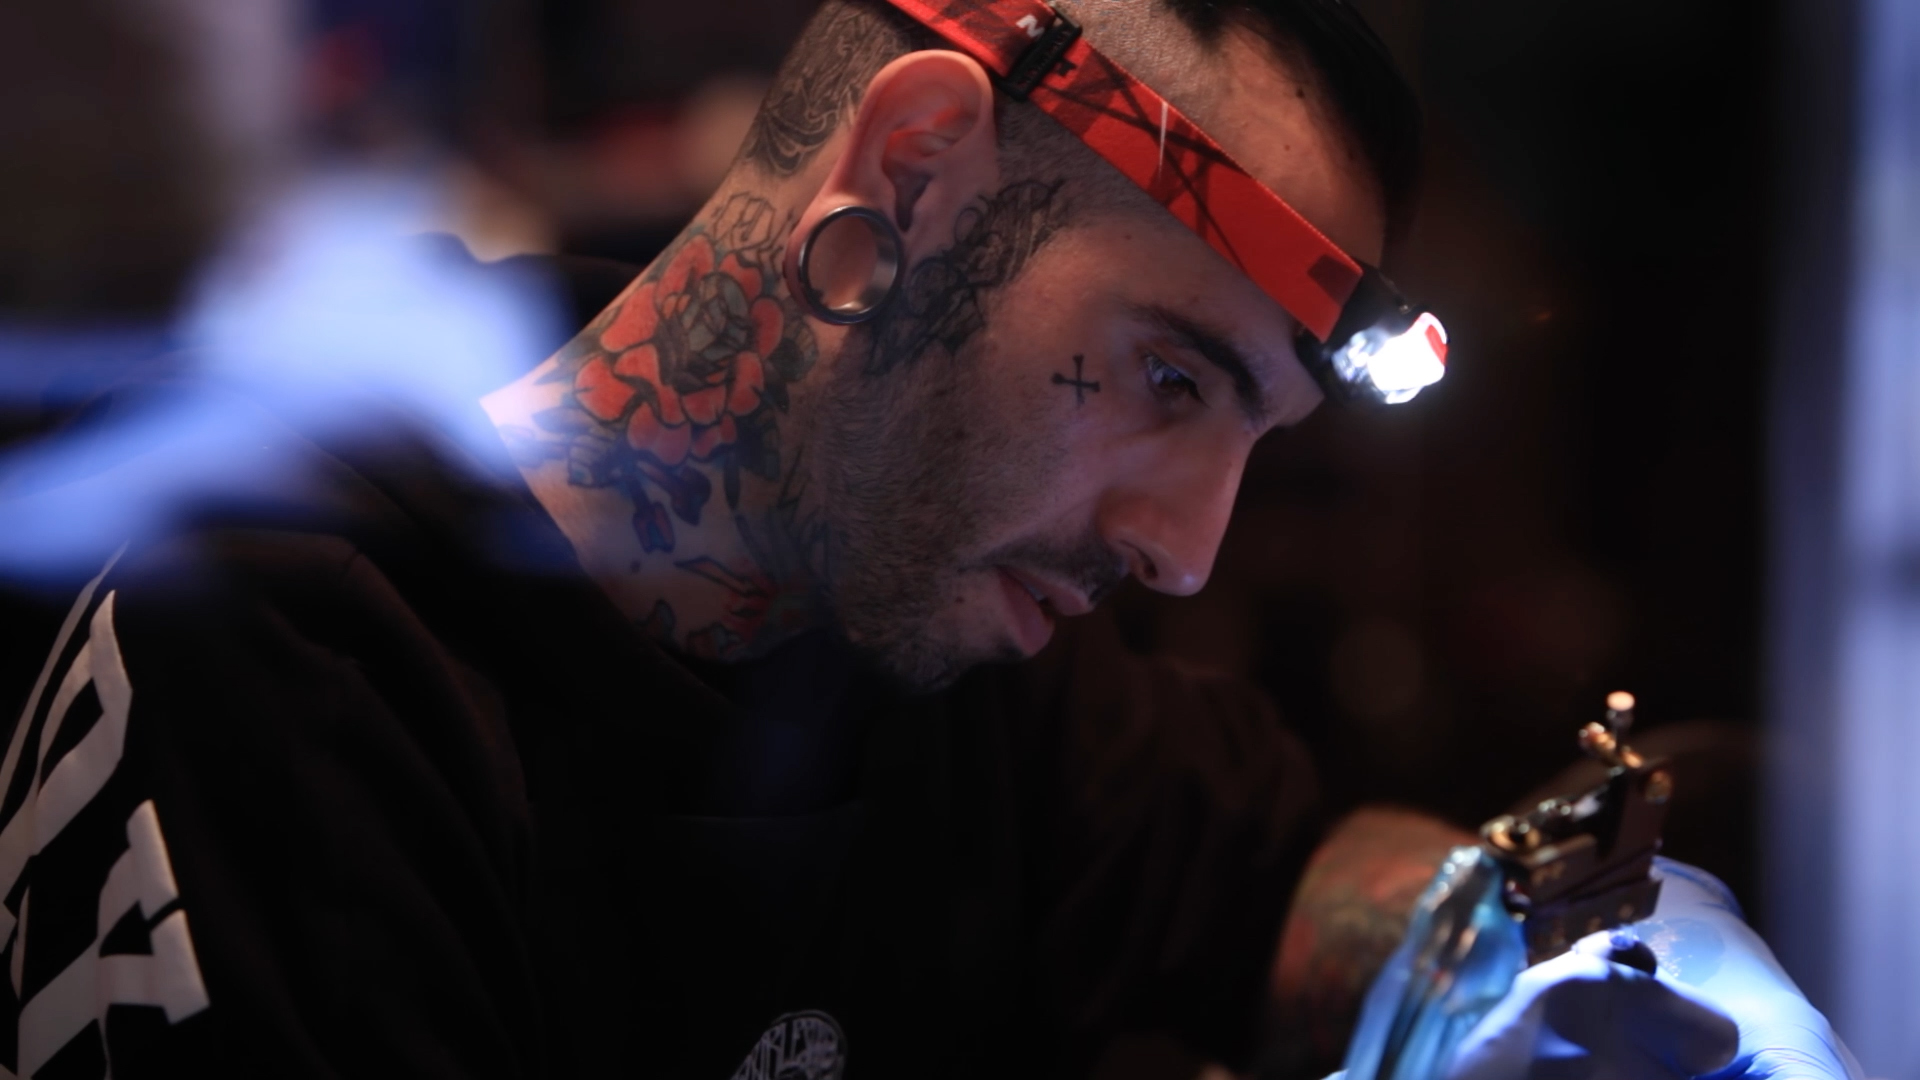 Portraits: Artisans of the New Century|El Cuervo Dorado Tattoo_04